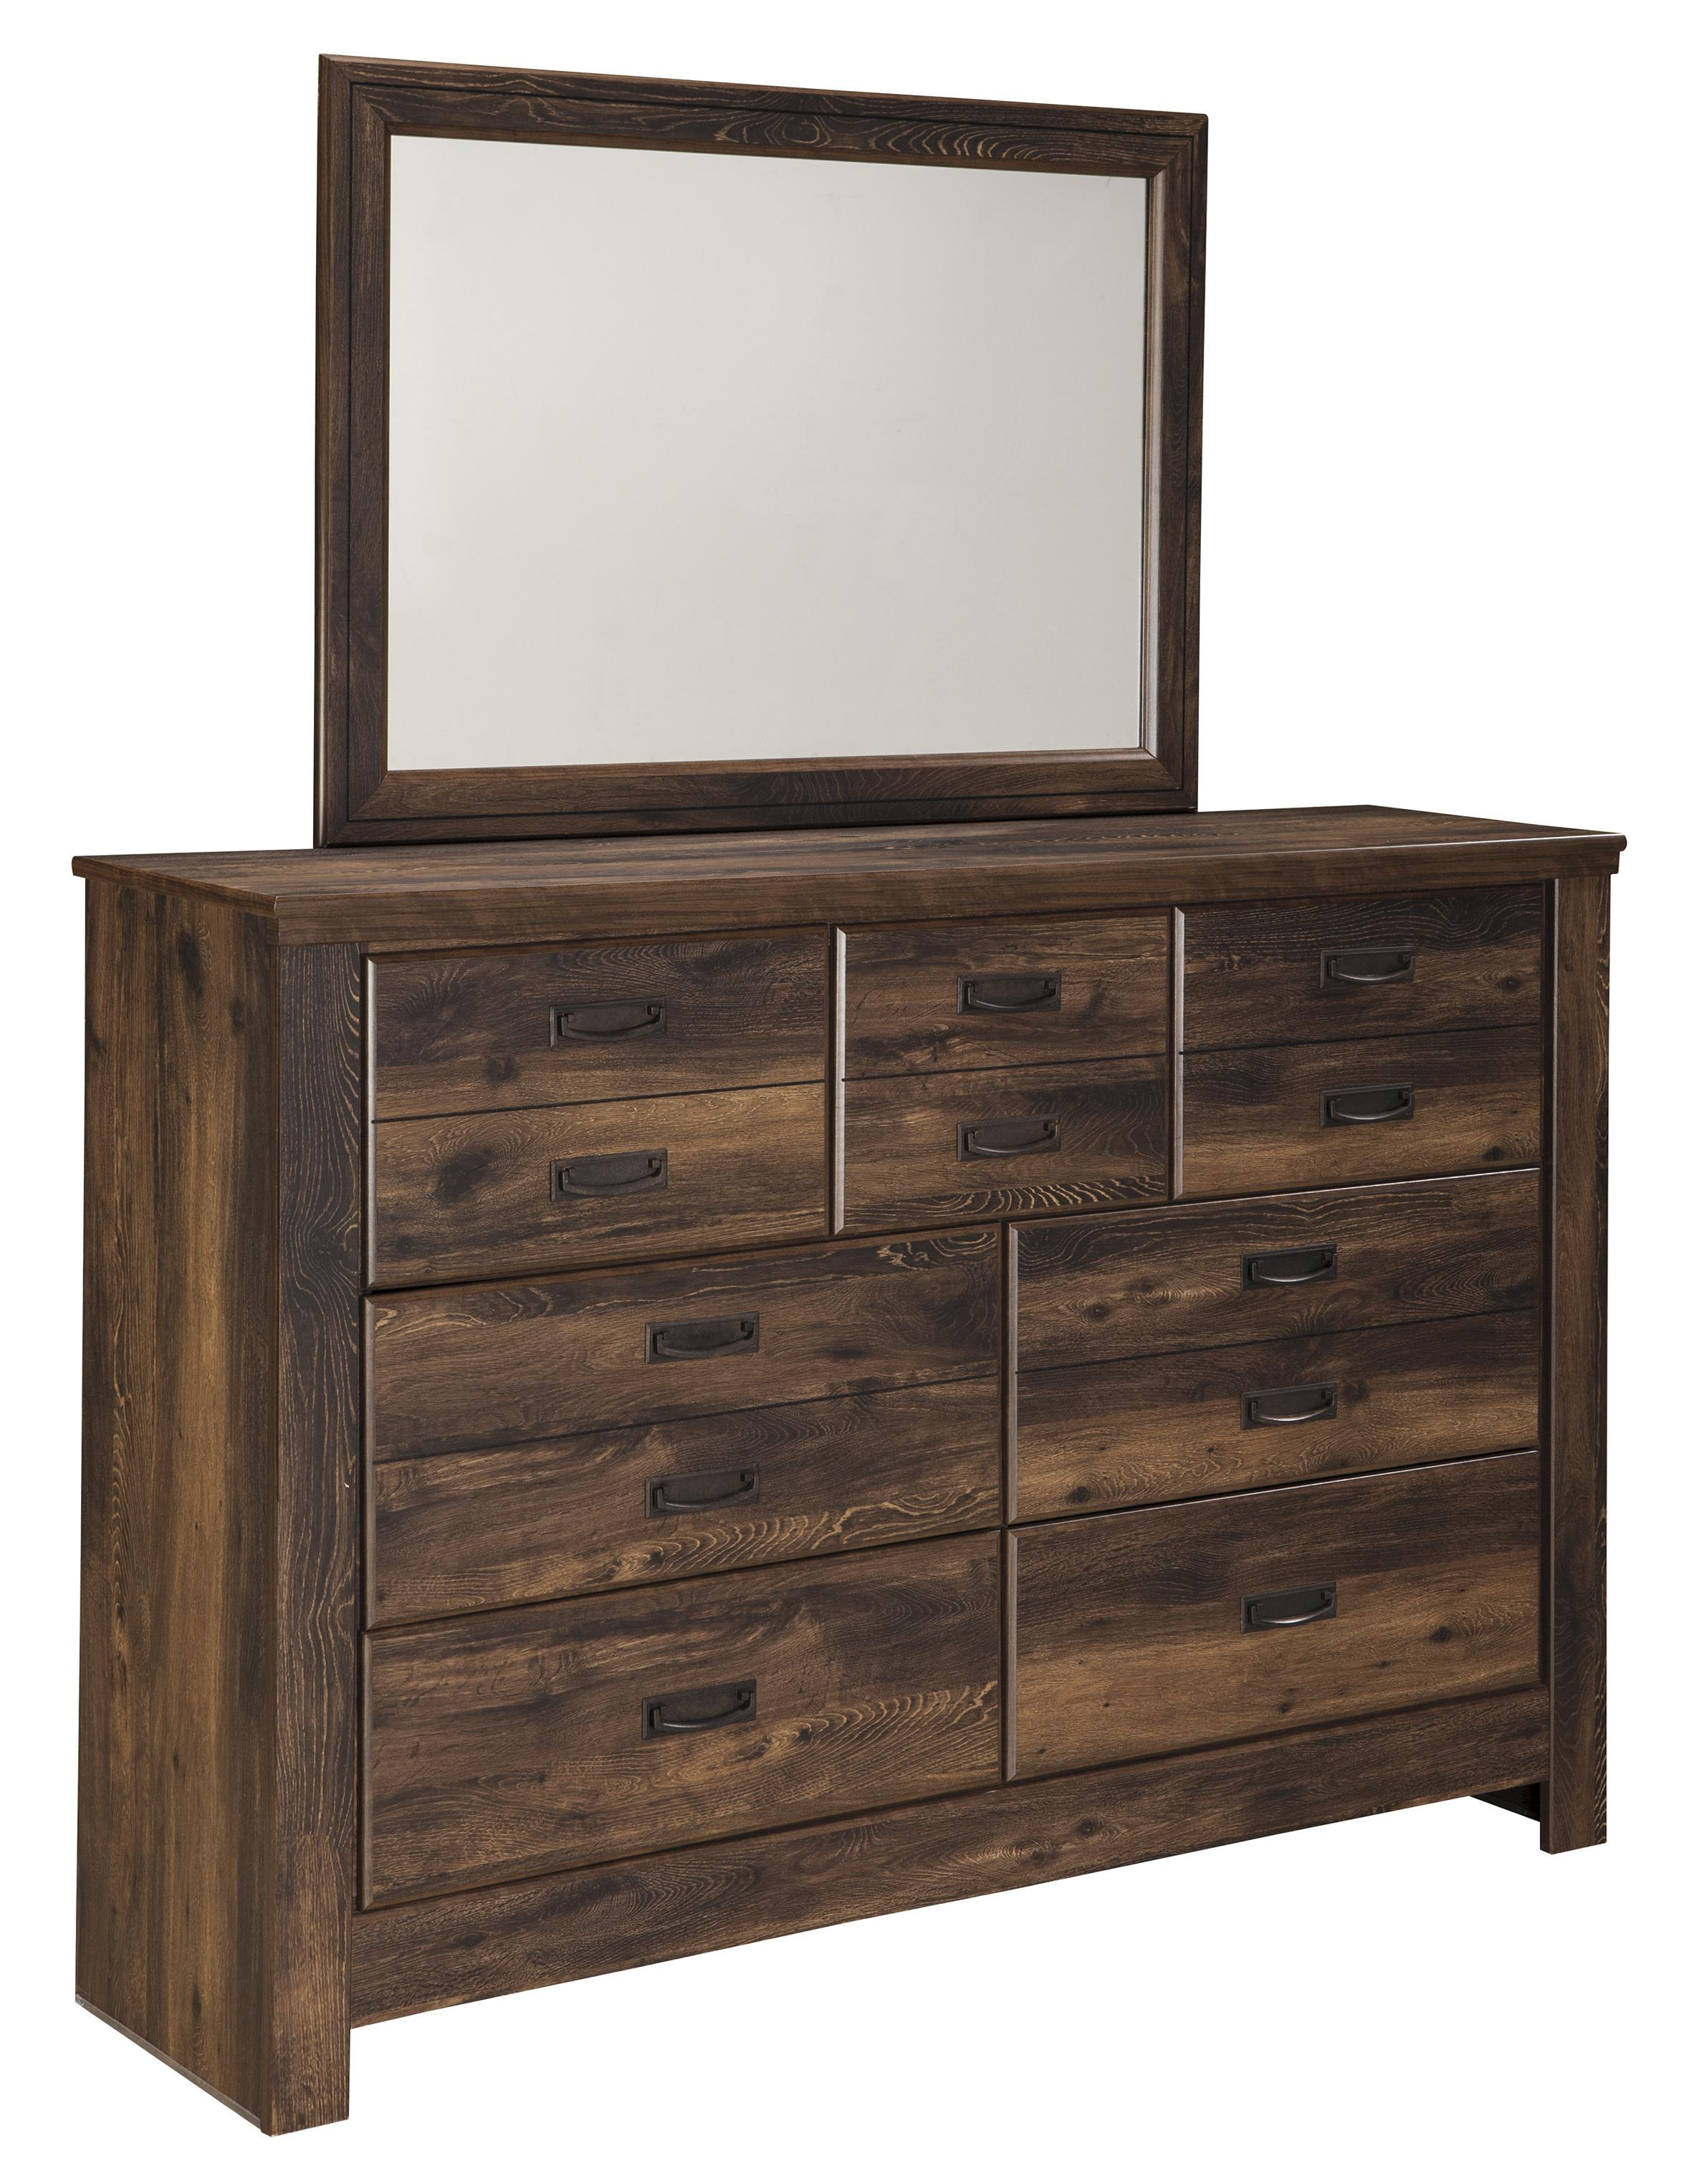 Signature Design By Ashley Quinden Rustic Dresser With 7 Drawers Mirror Wayside Furniture